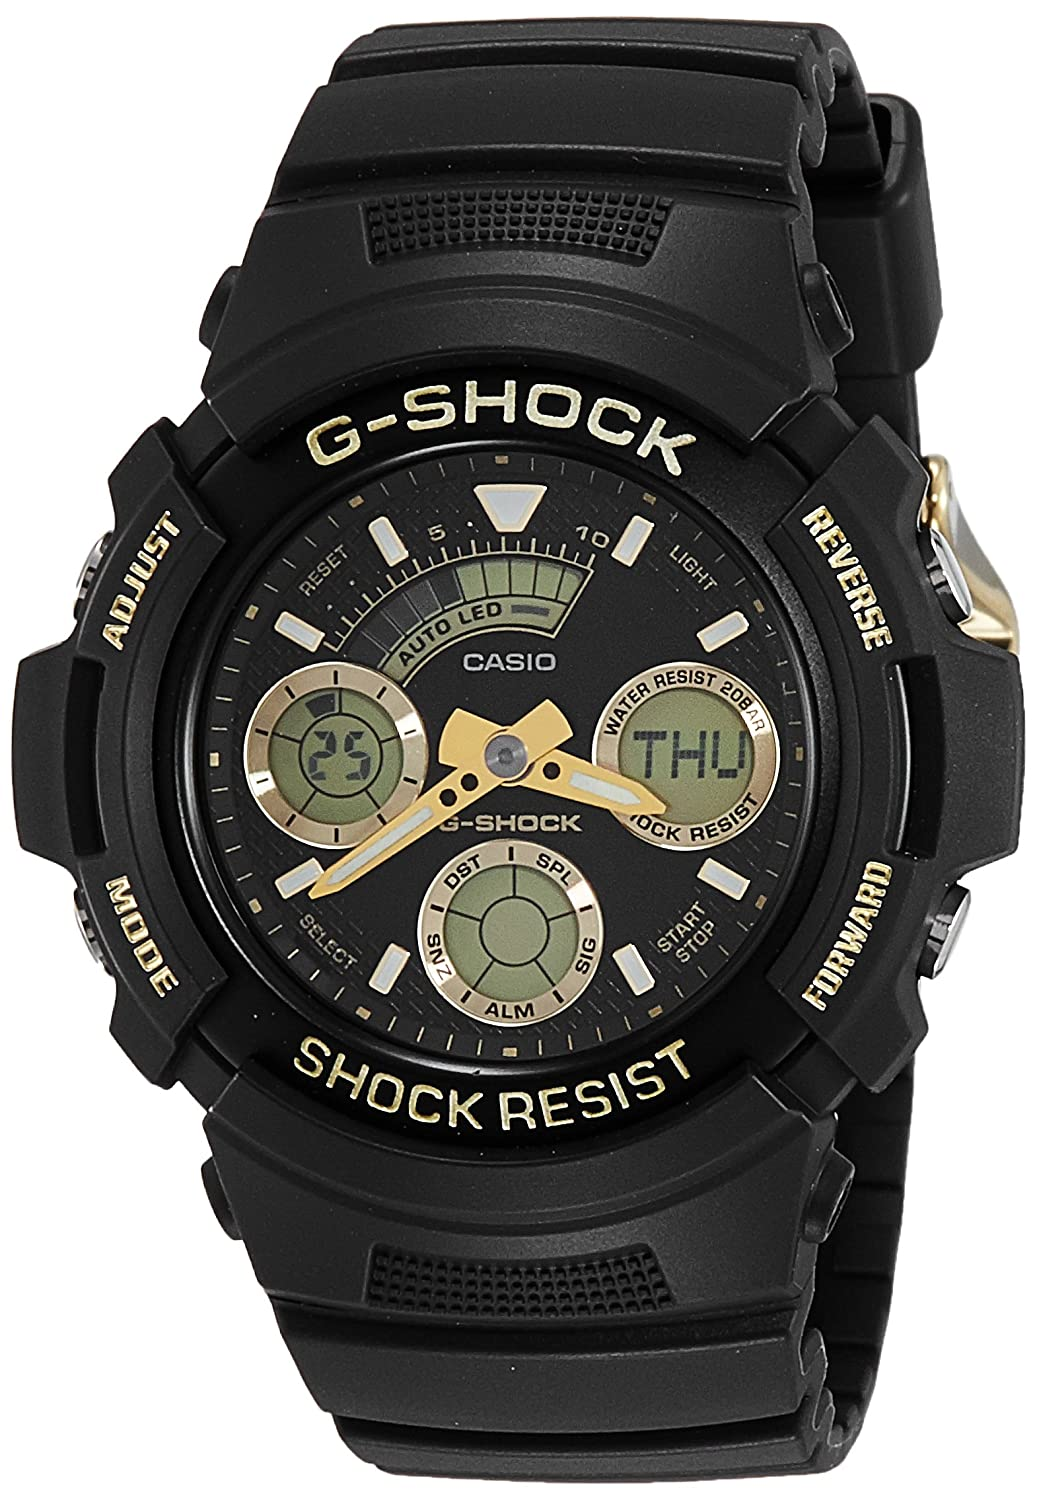 35c89fb89fd1 Buy Casio G-Shock Analog-Digital Black Dial Men s Watch - G776 (AW-591GBX-1A9DR)  Online at Low Prices in India - Amazon.in